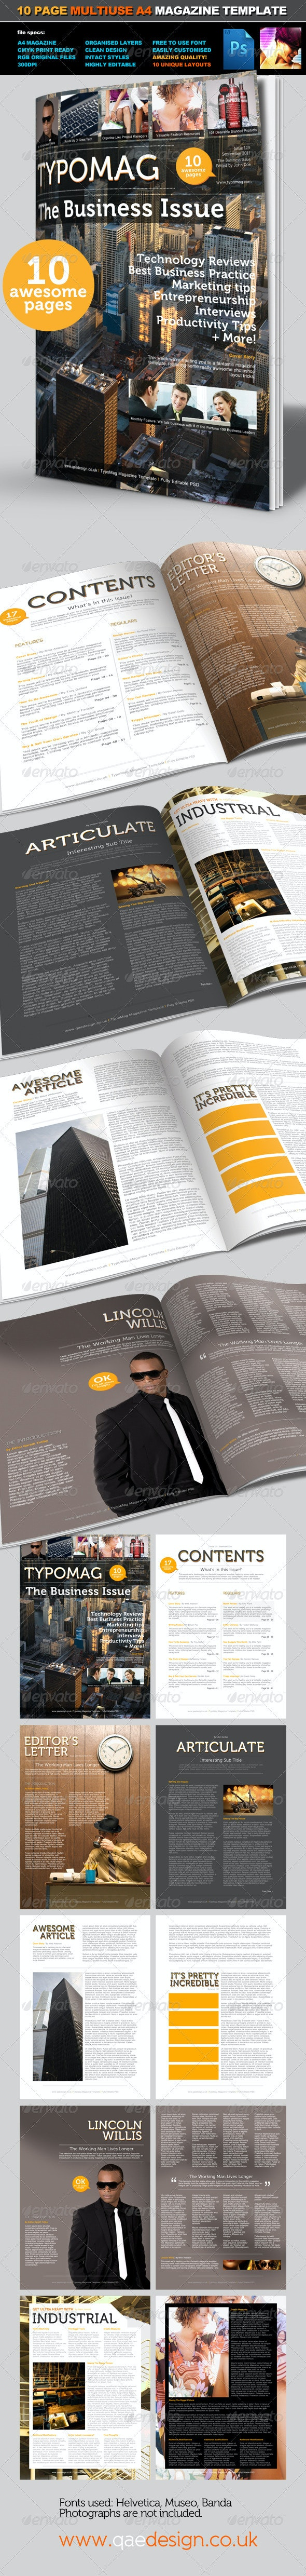 TypoMag - Corporate Business PSD Magazine Template - Magazines Print Templates